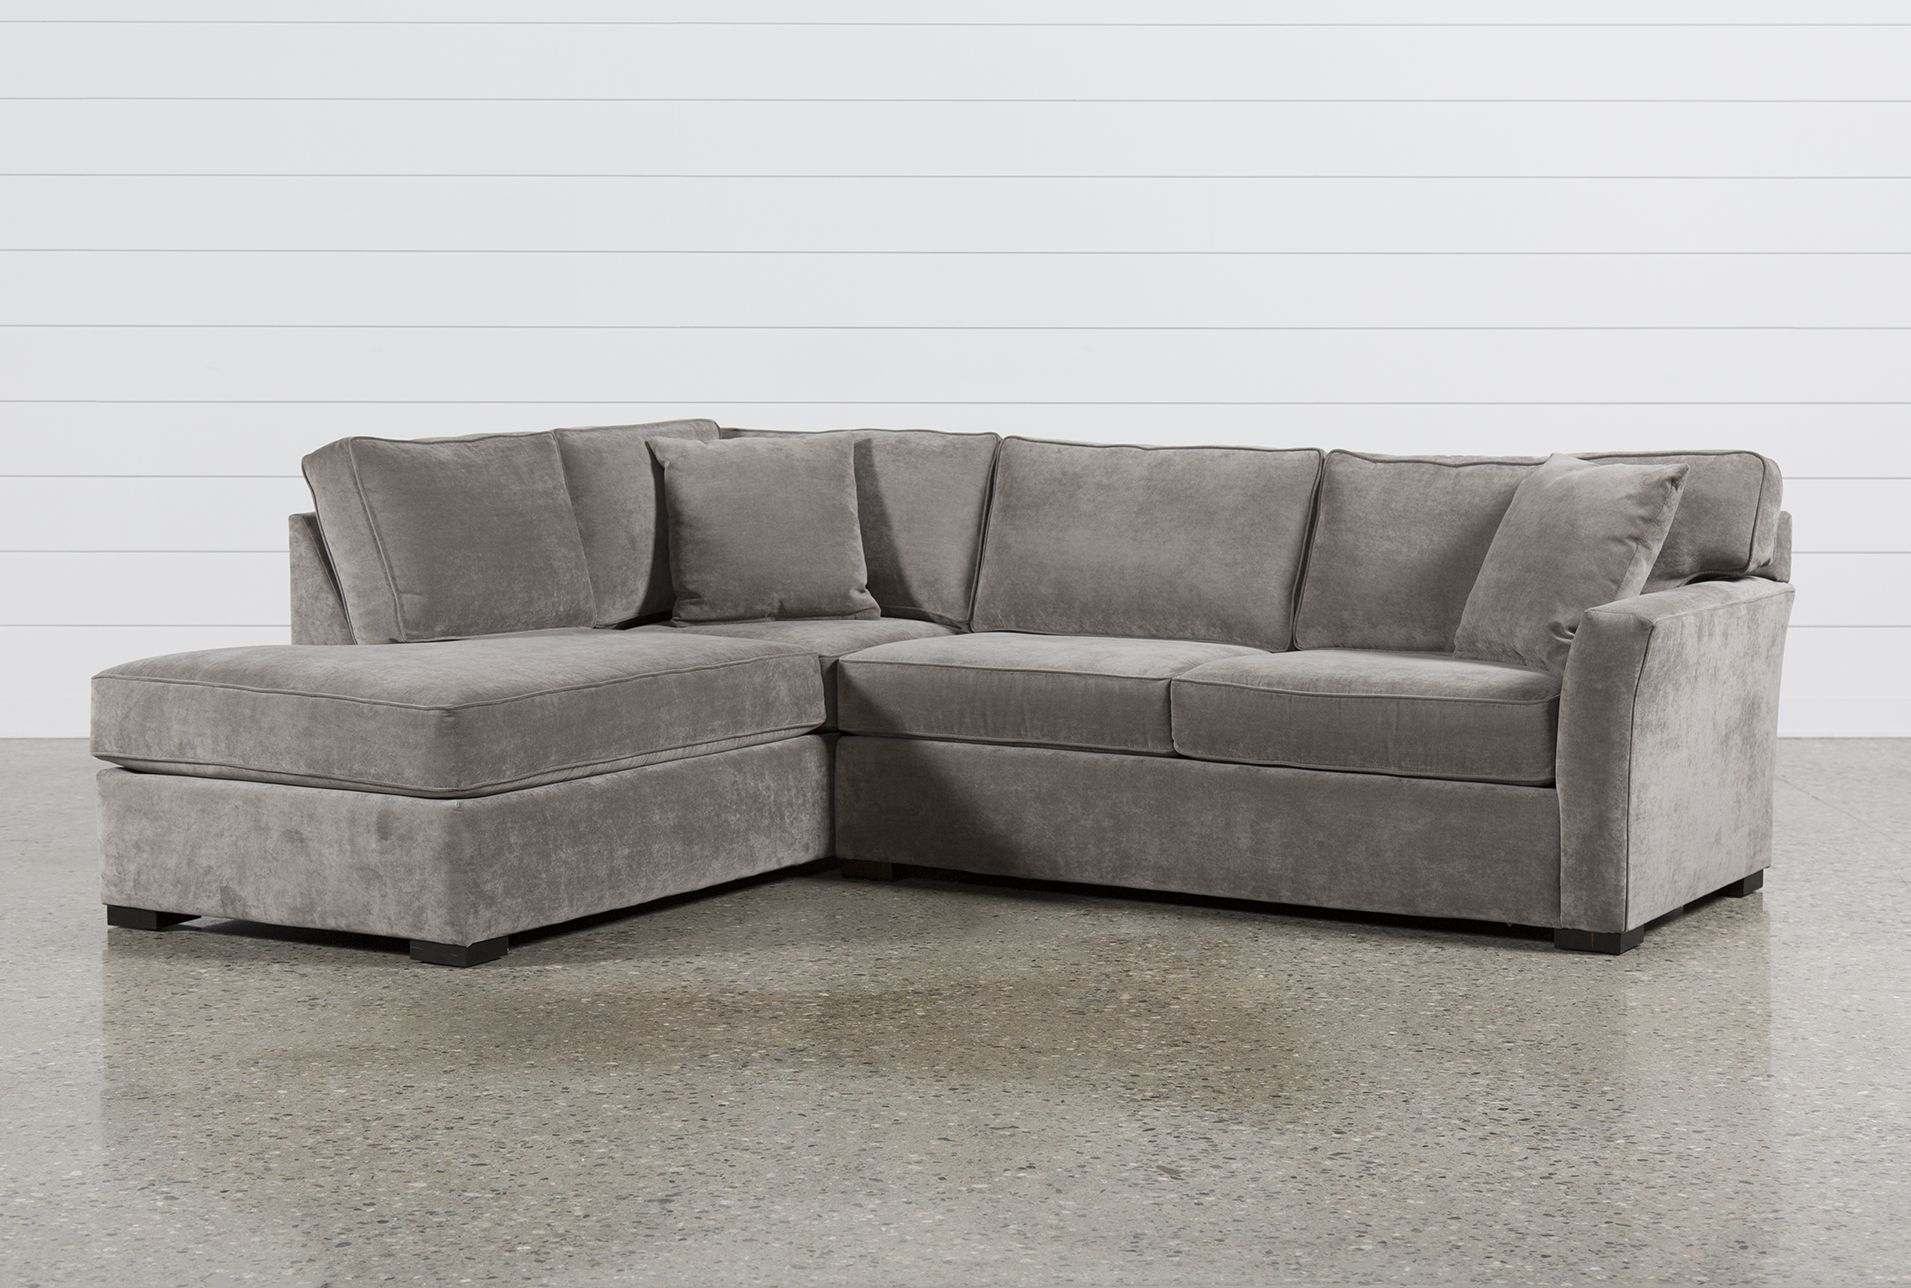 - Sleeper Sectional Sofa With Chaise And Its Benefits Sectional